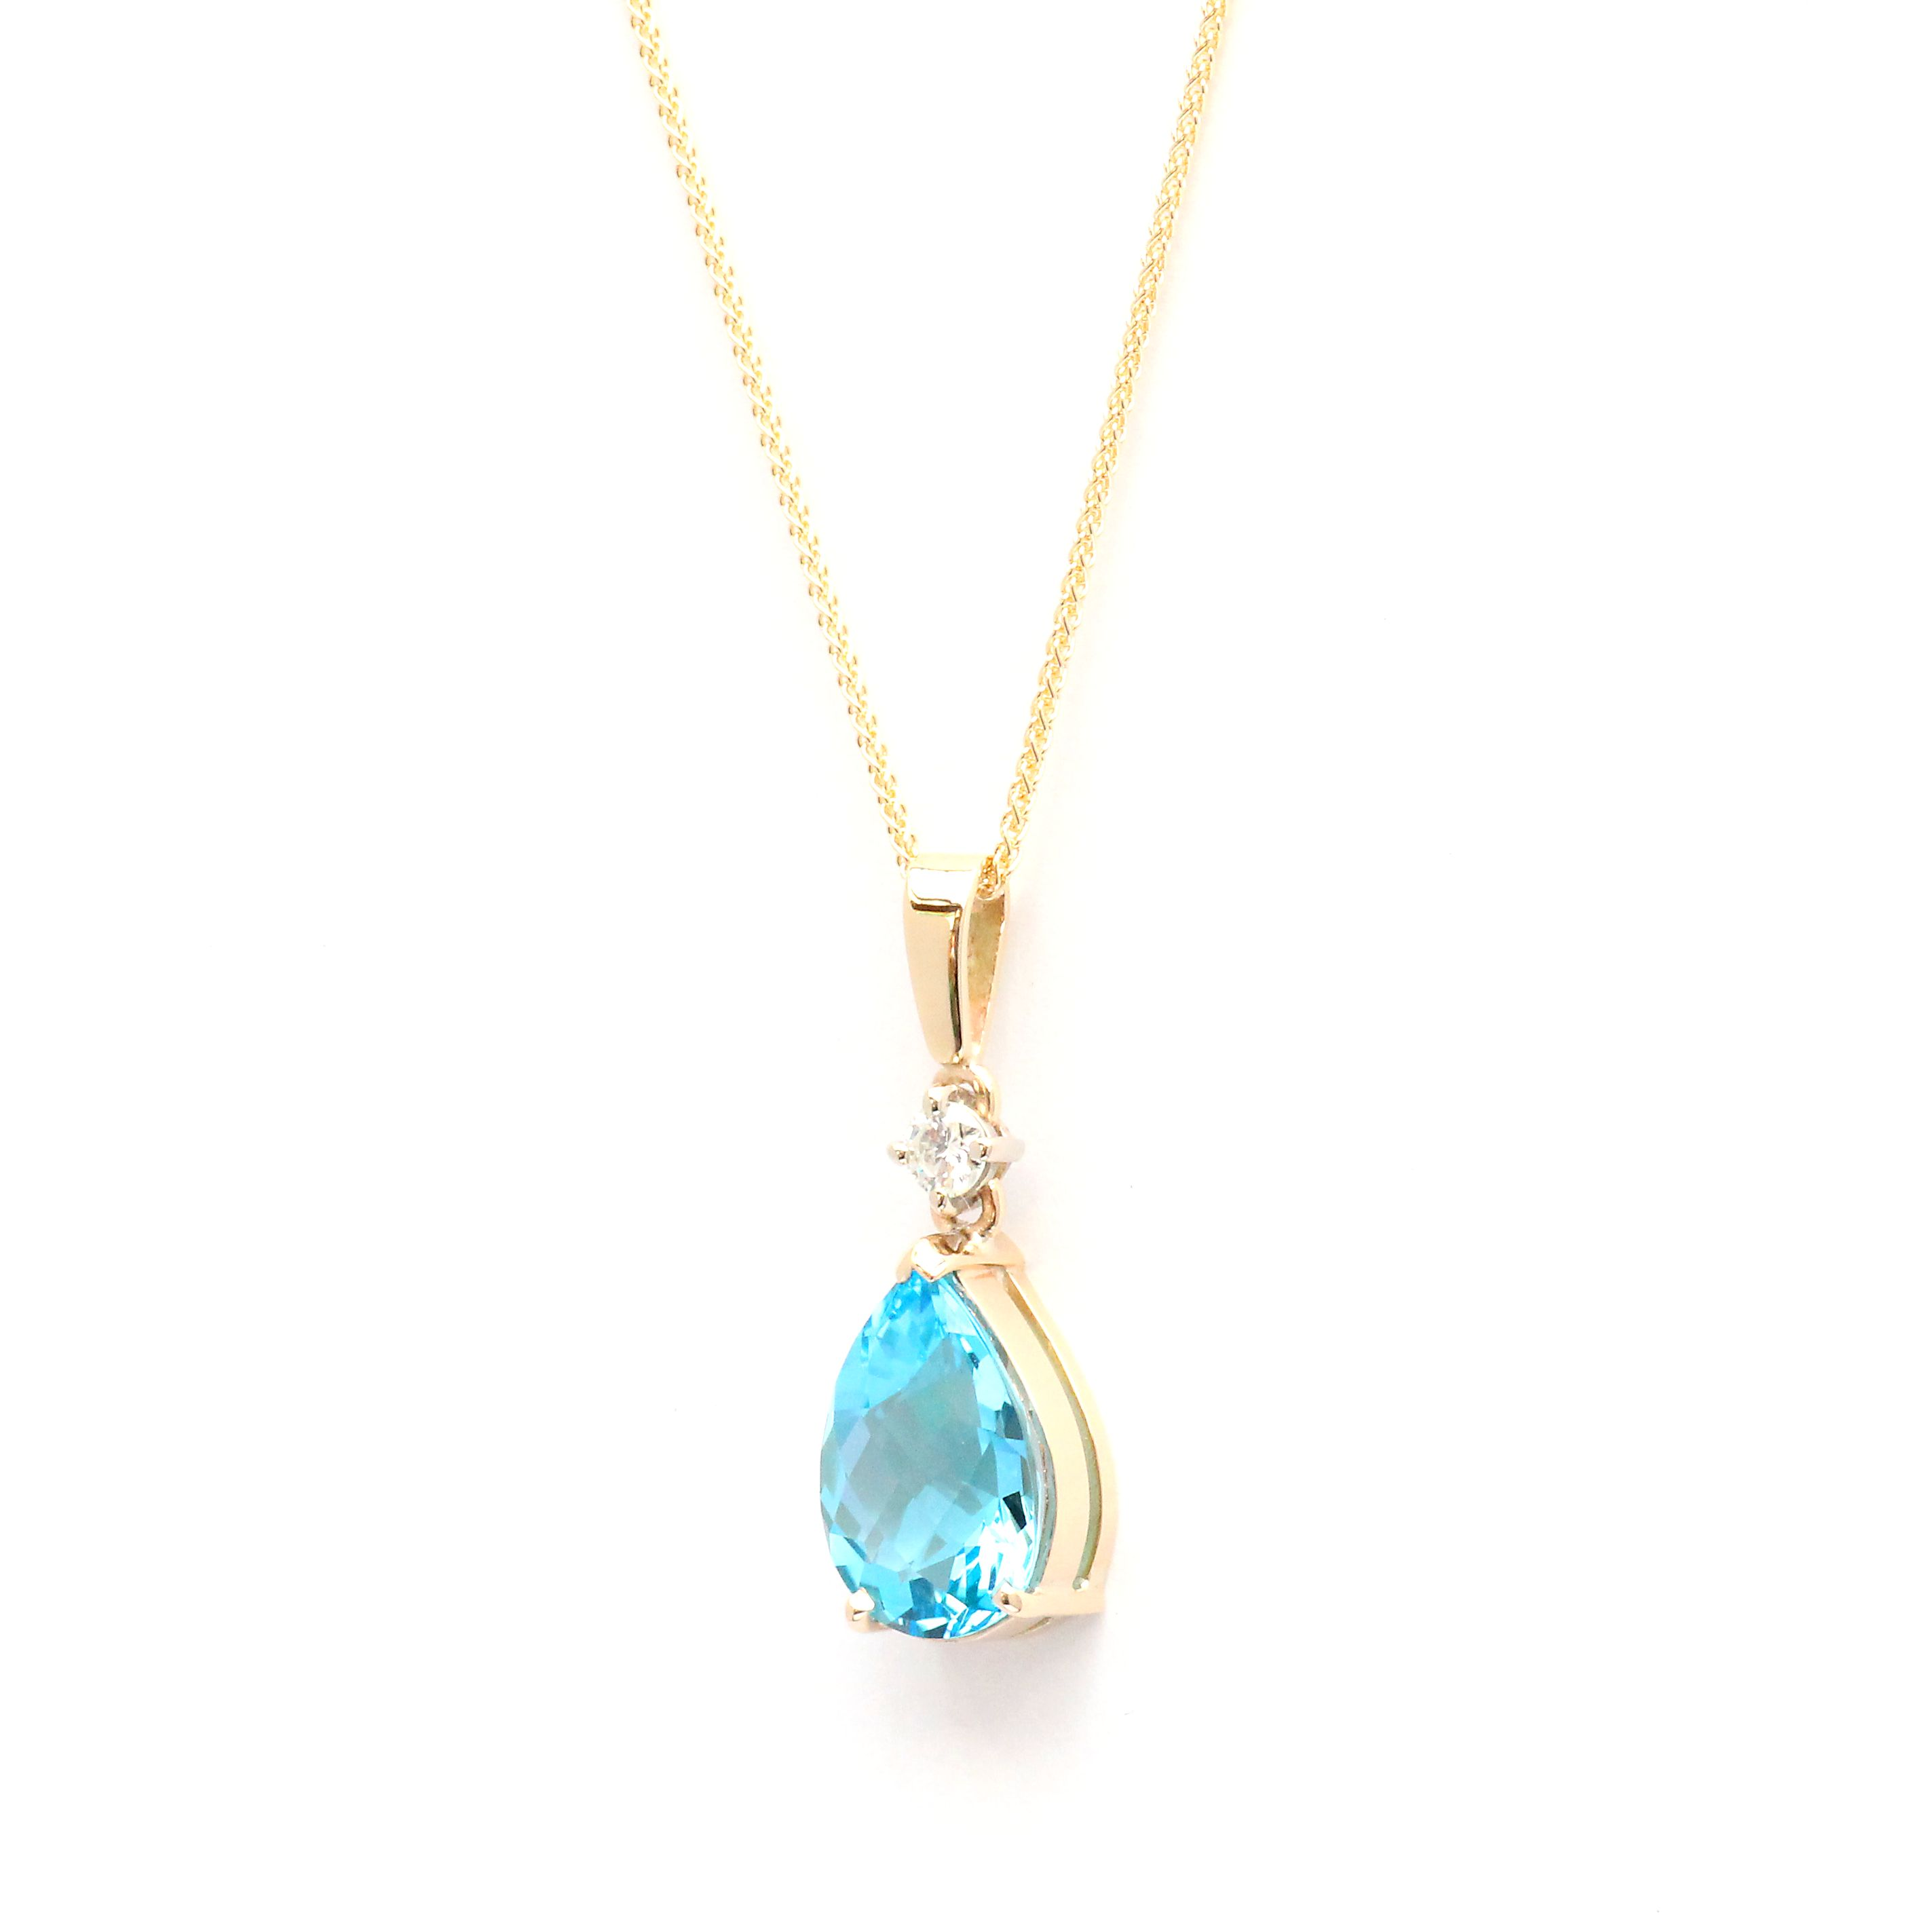 allurez halo pendant gold white necklace pin pear shaped diamond